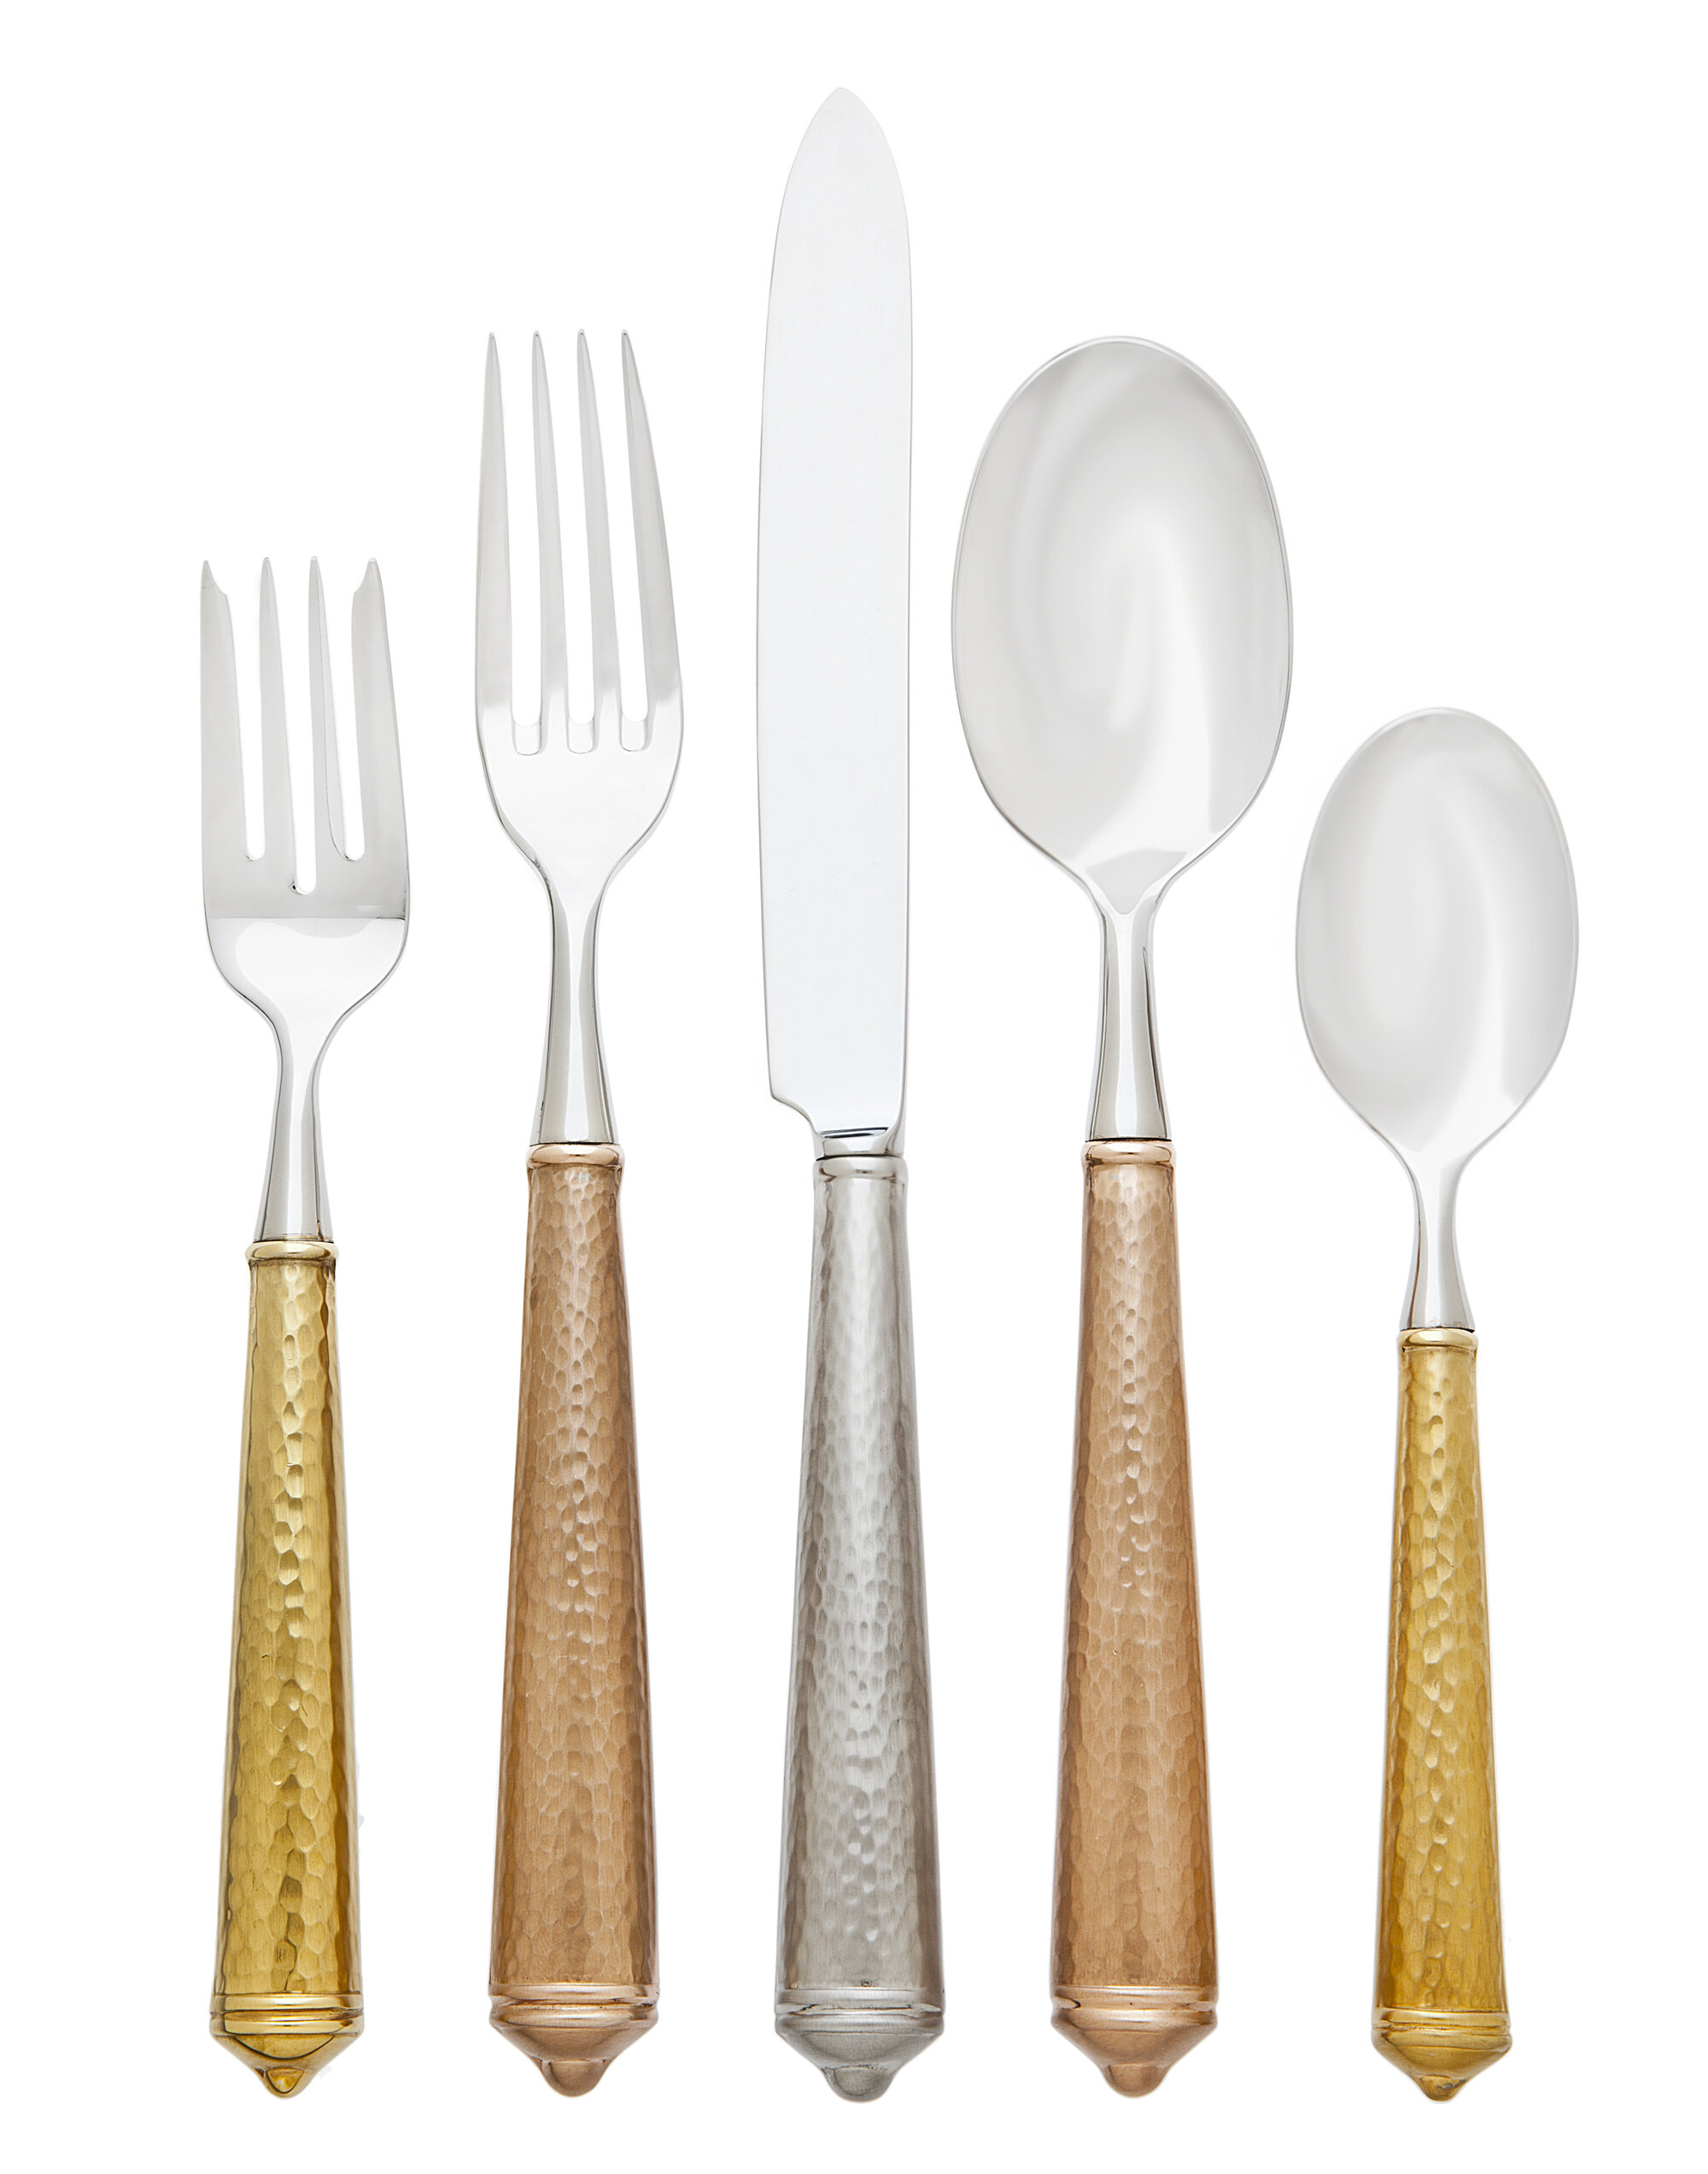 Ricci Argentieri Cellini 5 Piece Hostess Set Stainless 18//10 NEW in box